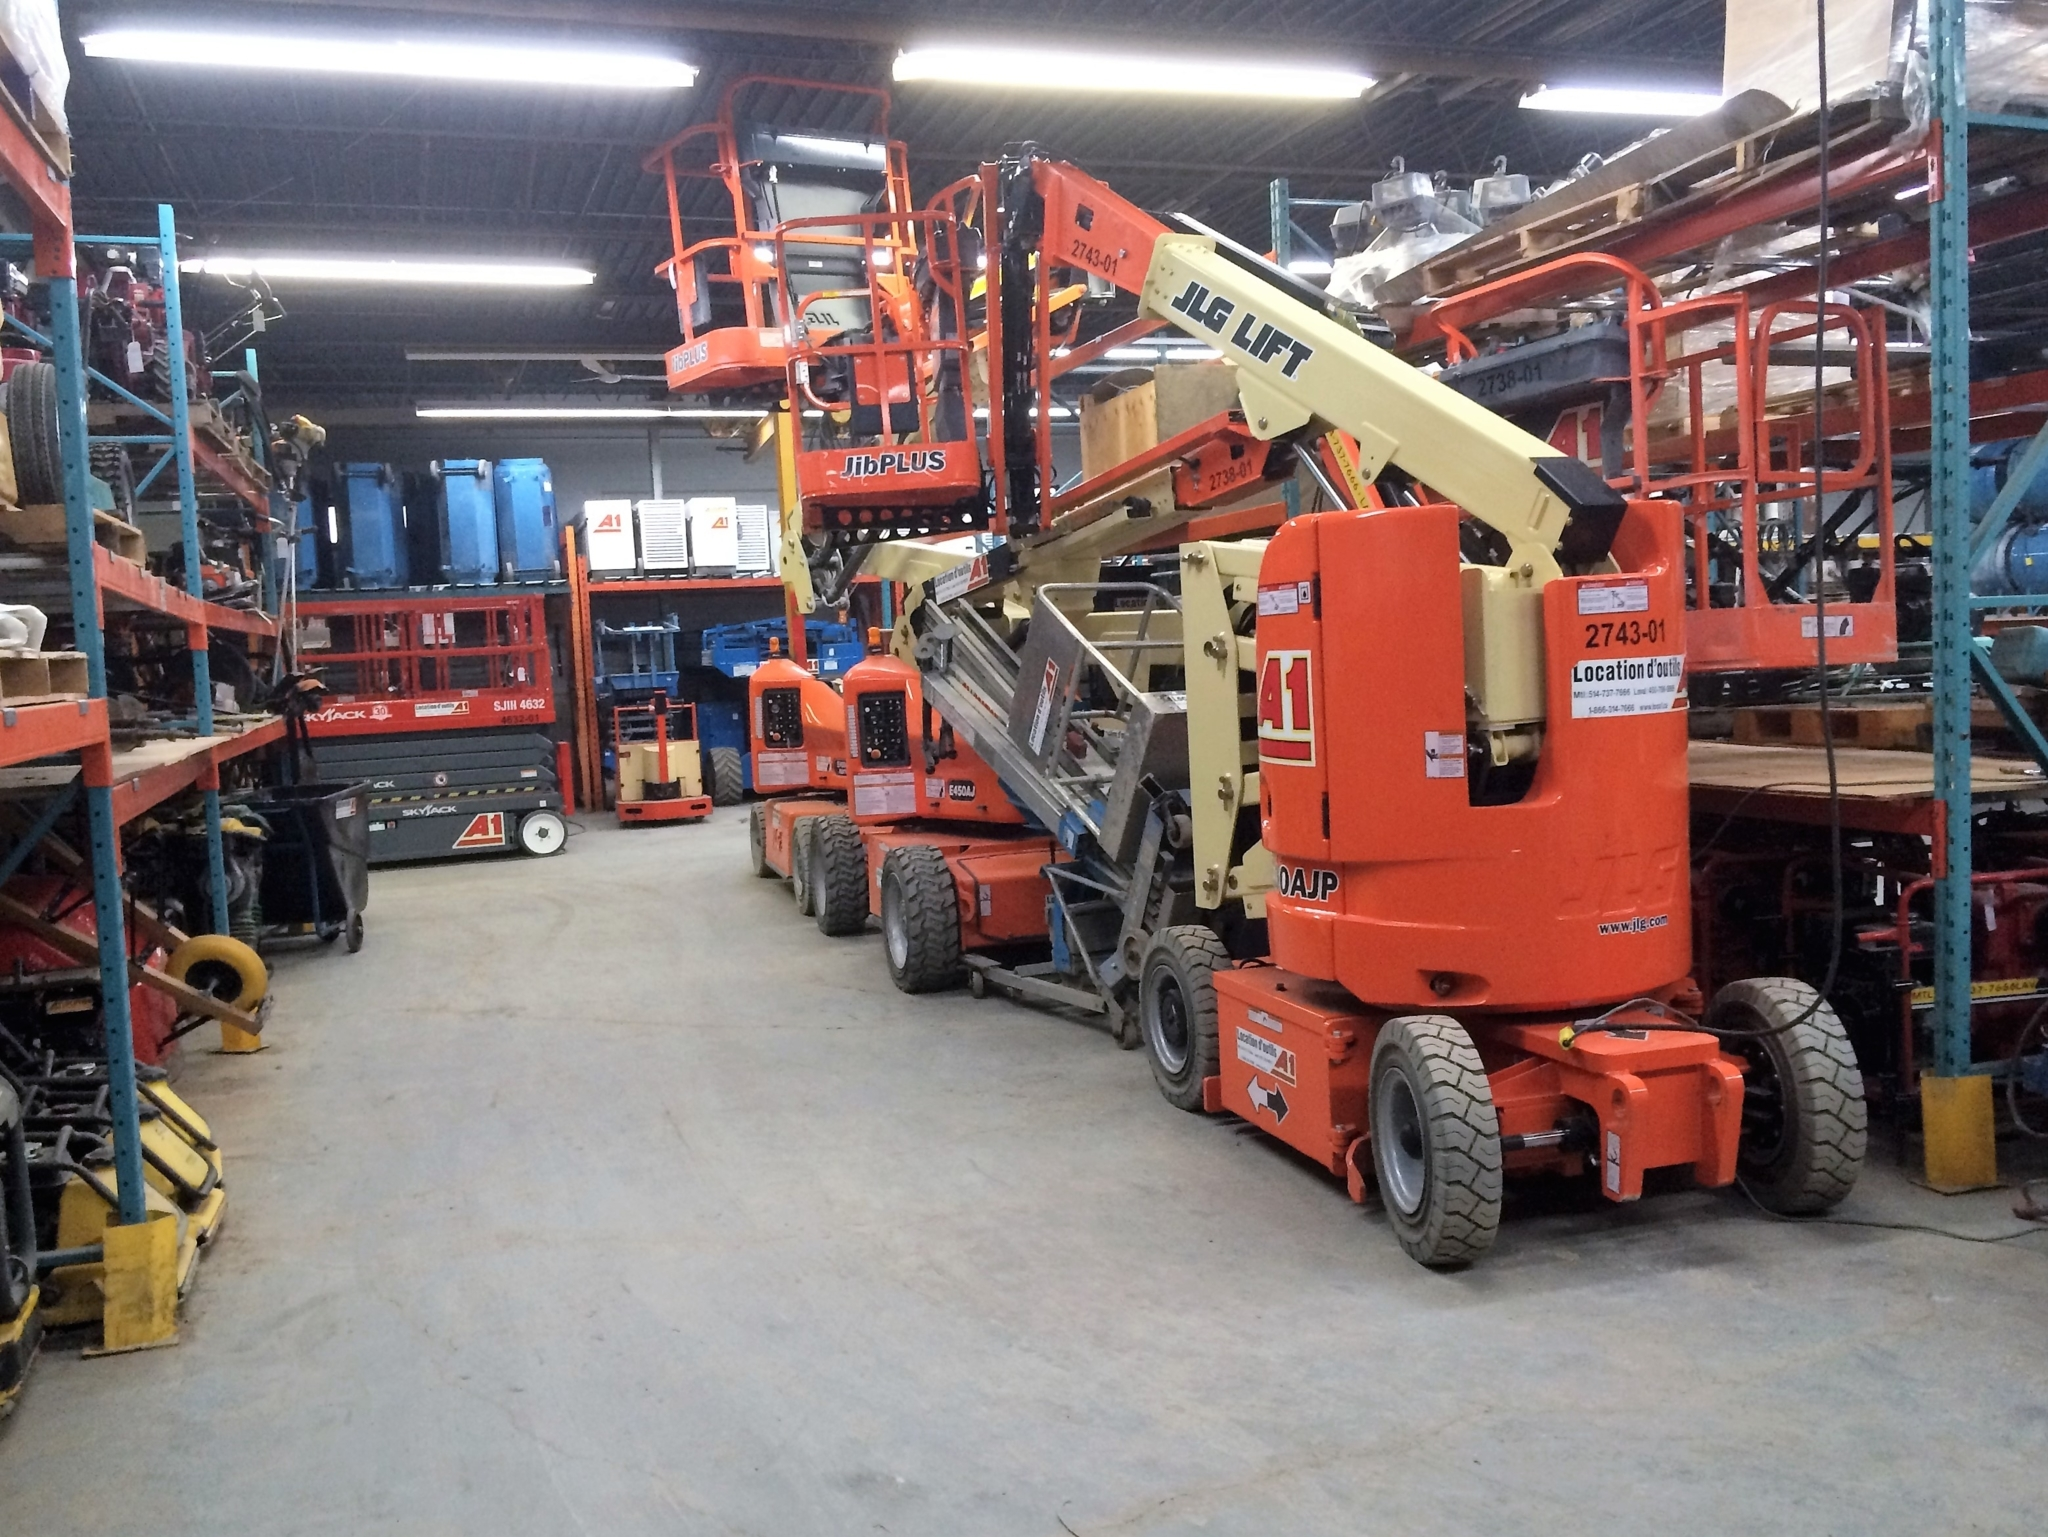 Equipment Rentals Inc à Saint-Laurent